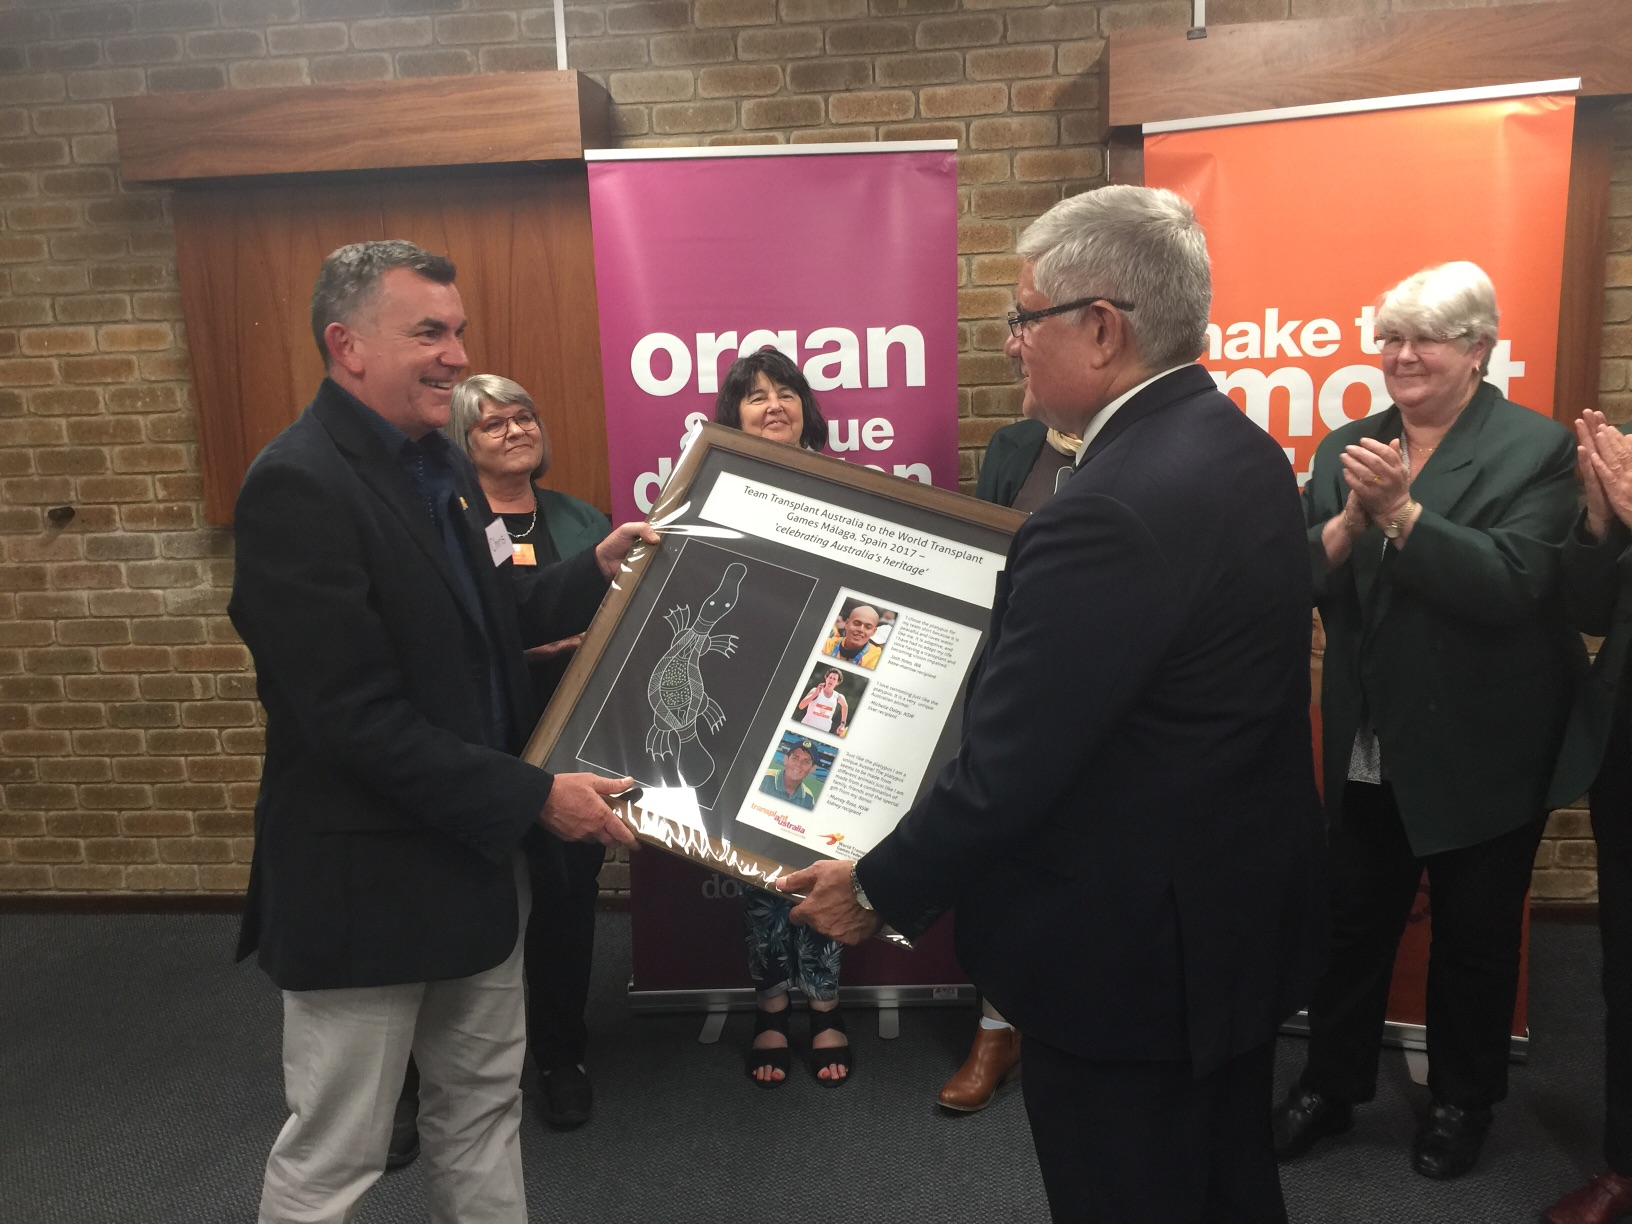 Transplant Australia CEO Chris Thomas presenting Minister Wyatt with an artwork